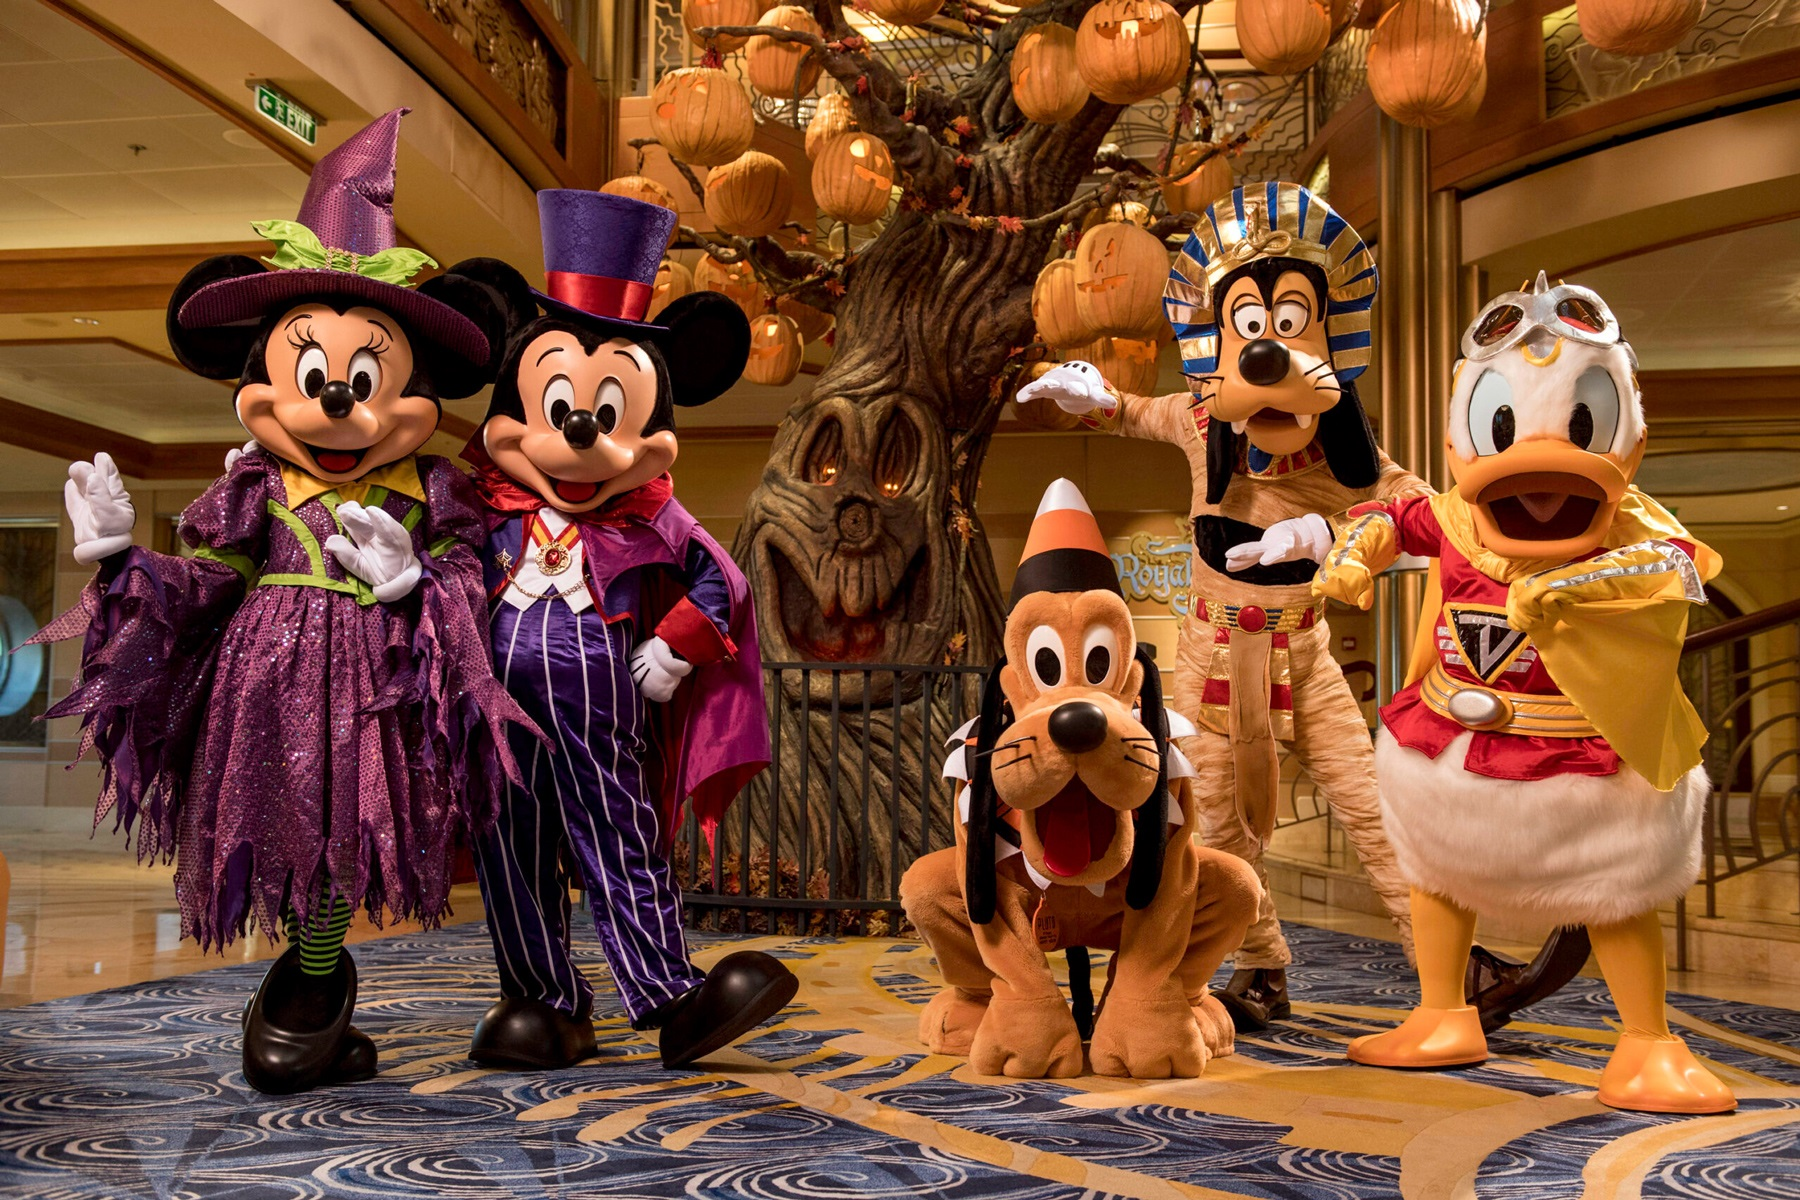 disney cruise mickey and minnie mouse, goofy, pluto, and donald duck halloween